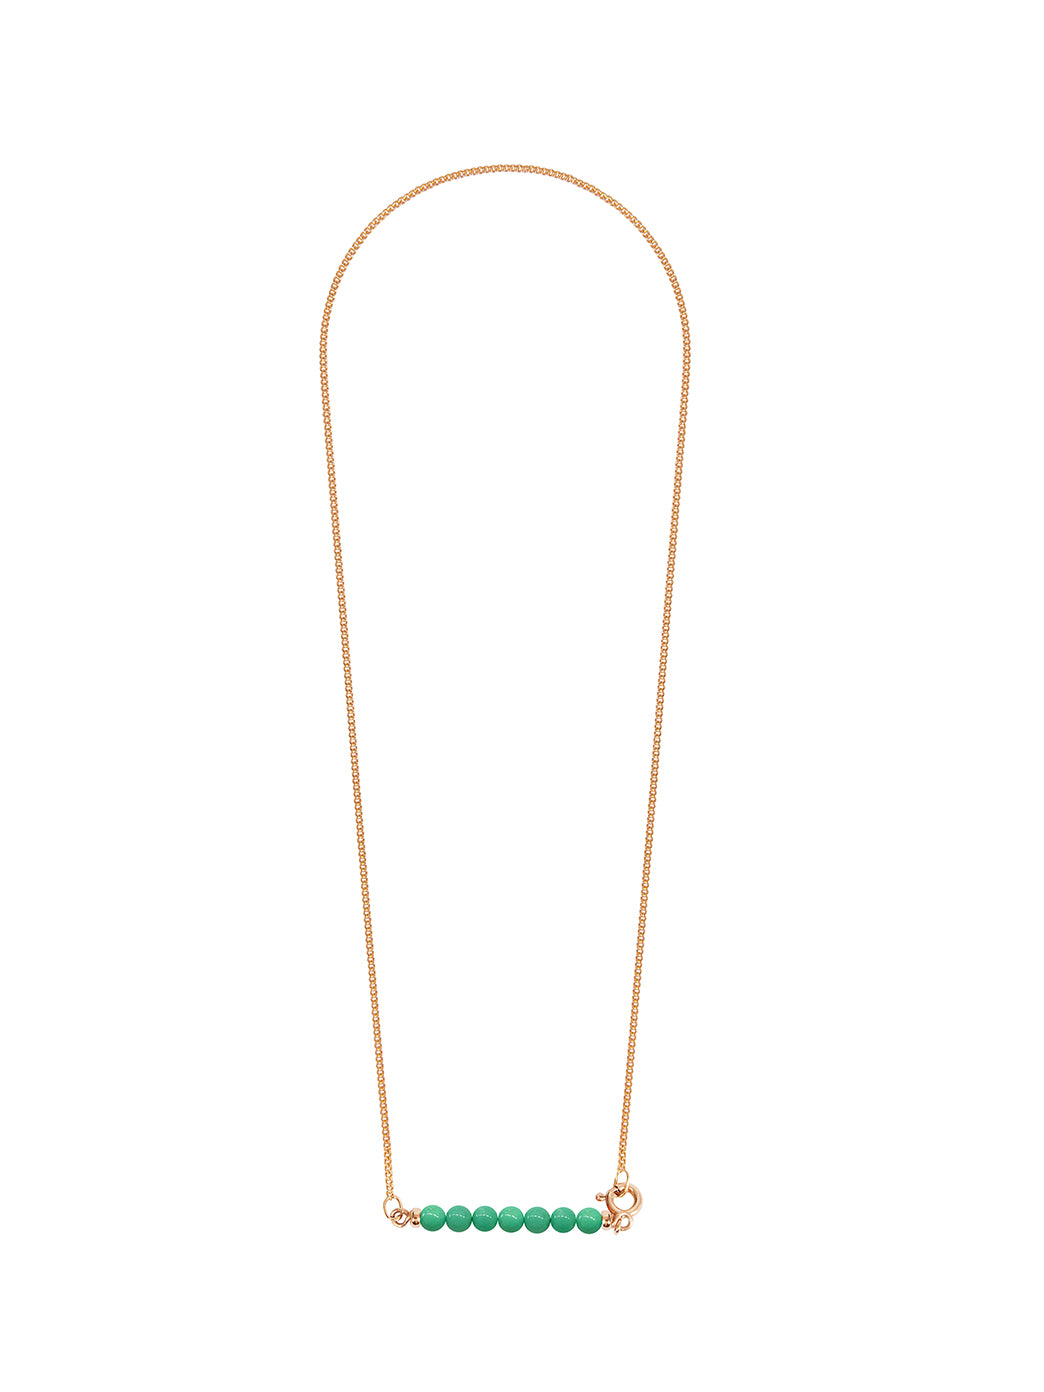 Fiorina Jewellery Gold Friendship Necklace Chrysoprase